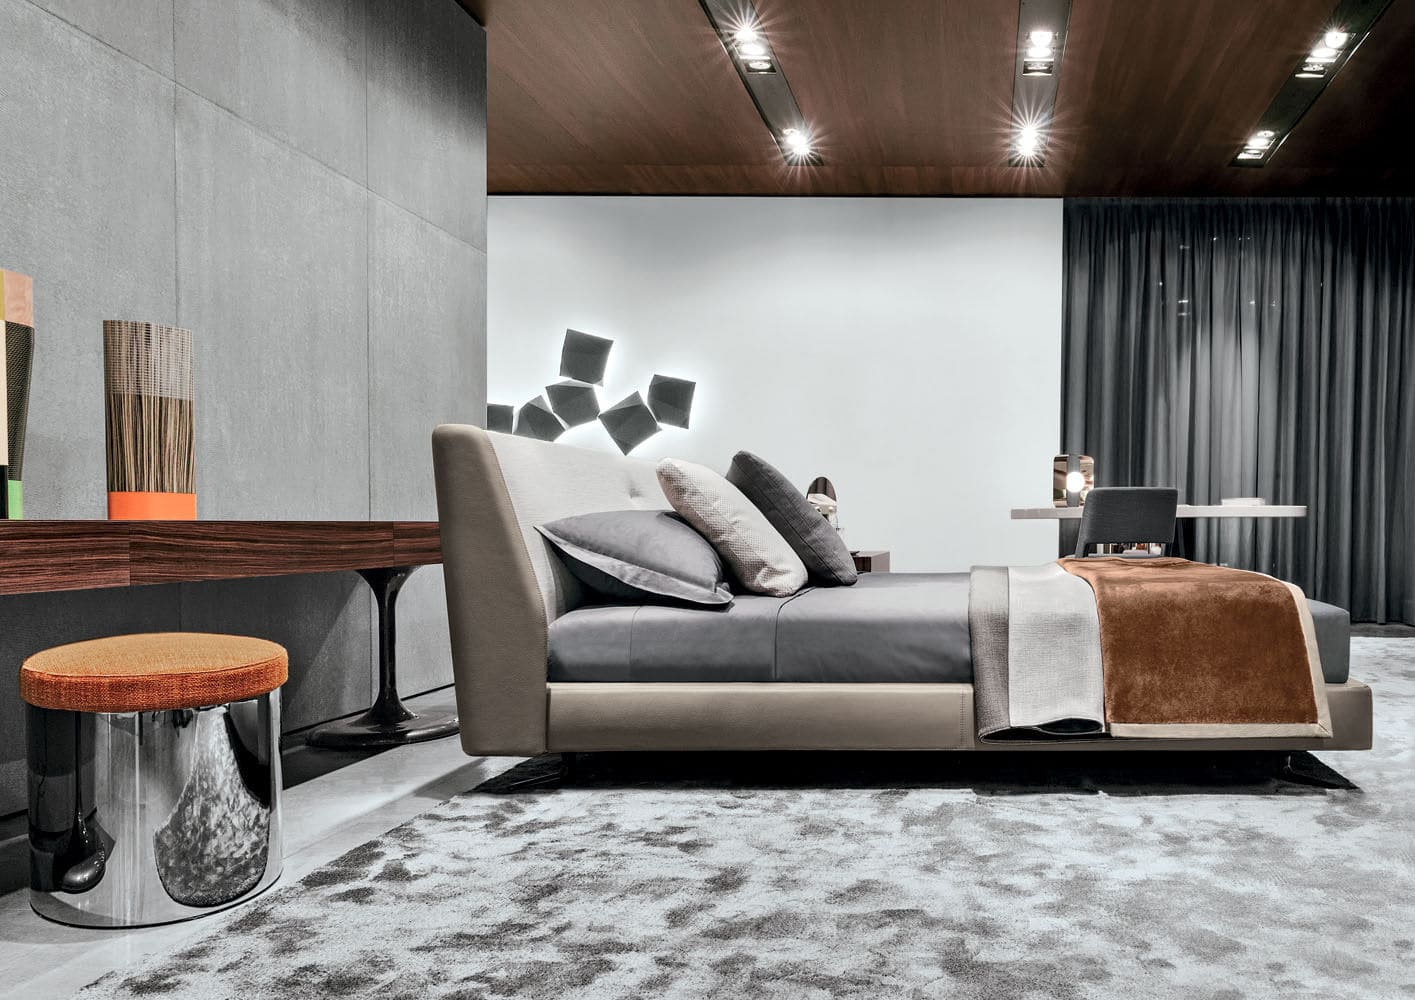 Sfera design Minotti bedroom furniture Spencer Bed